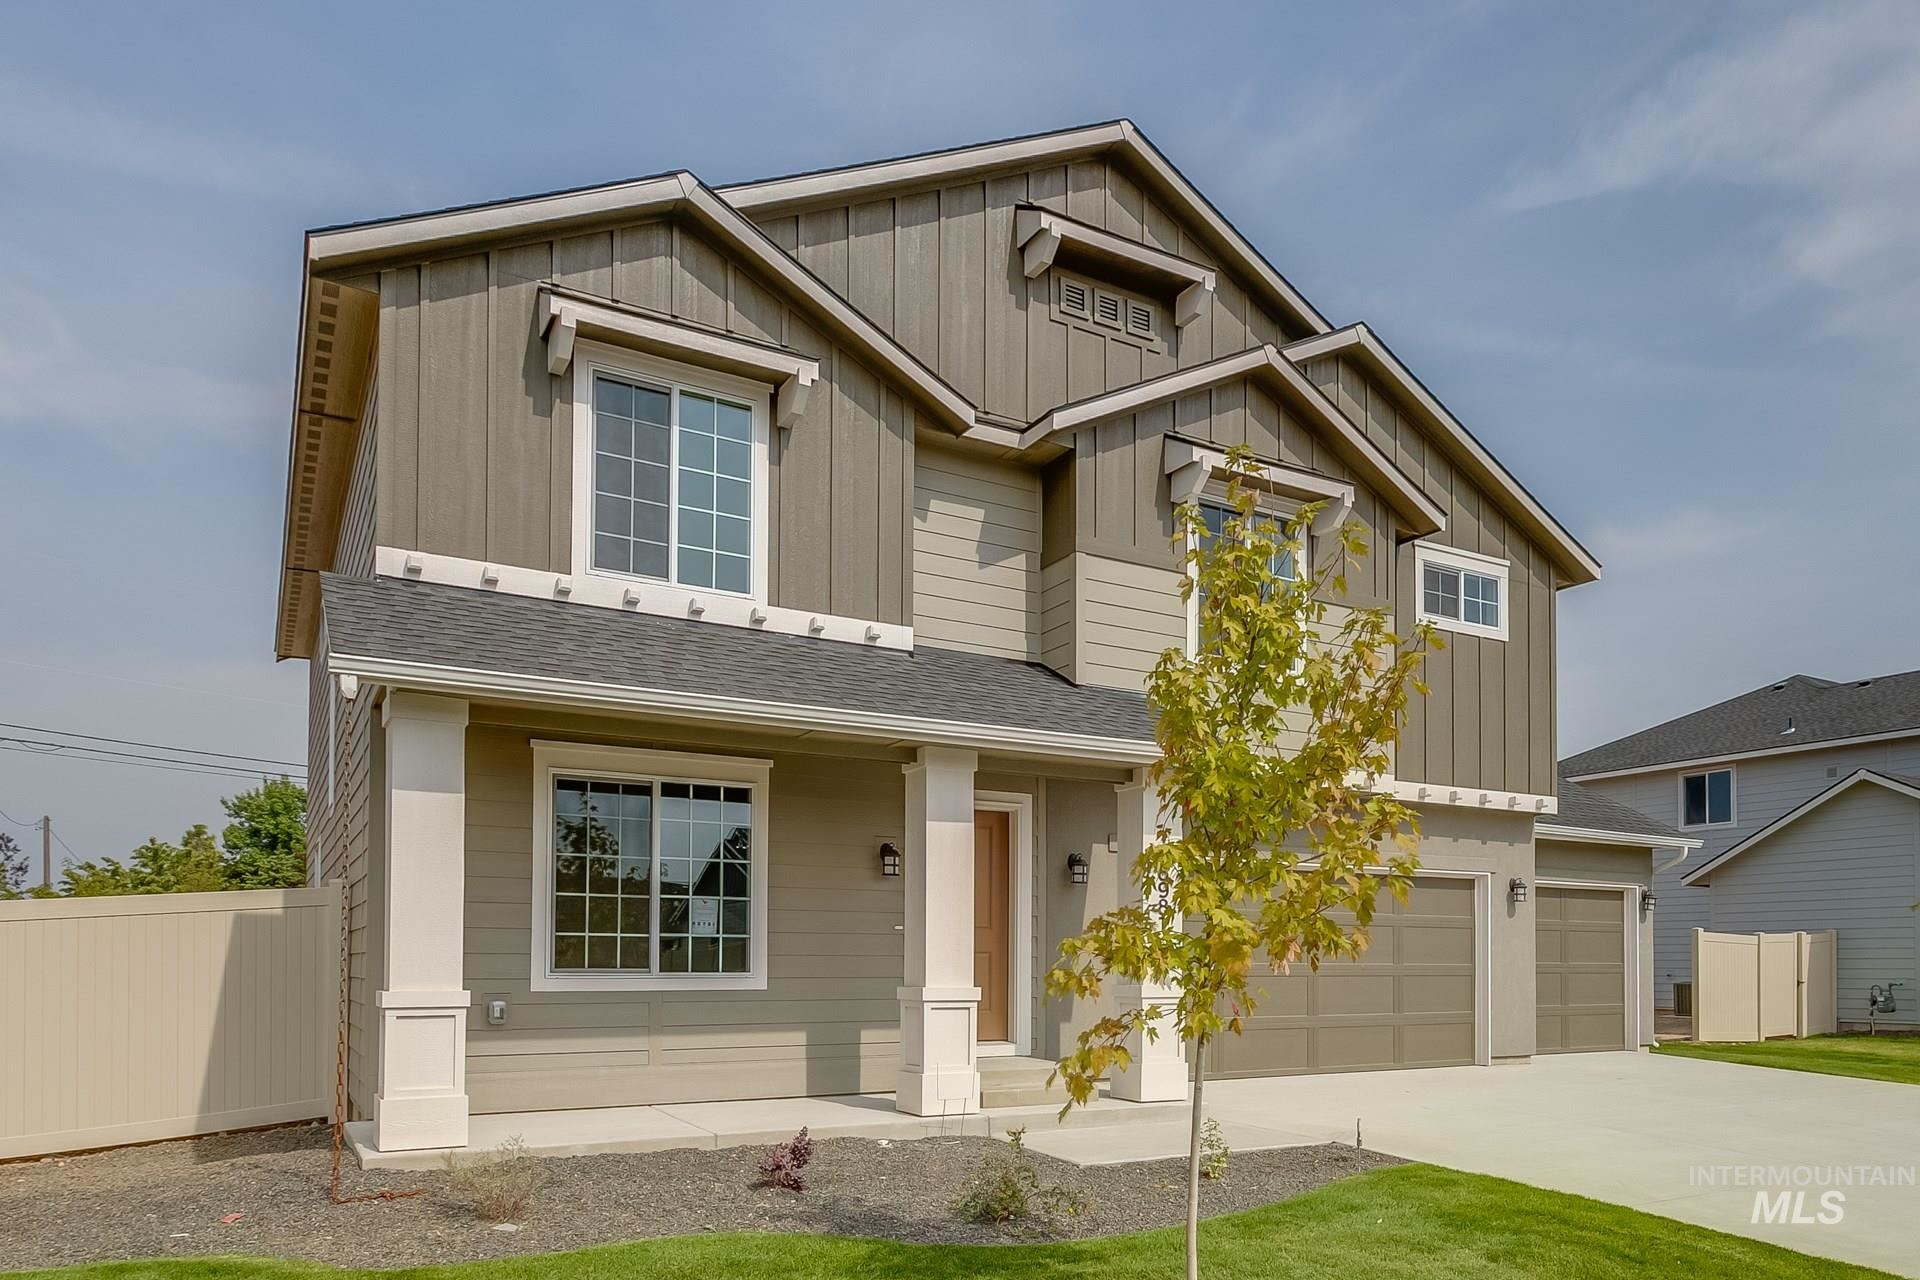 Photo of 17796 E Pegram Way, Nampa, ID 83687 (MLS # 98787494)